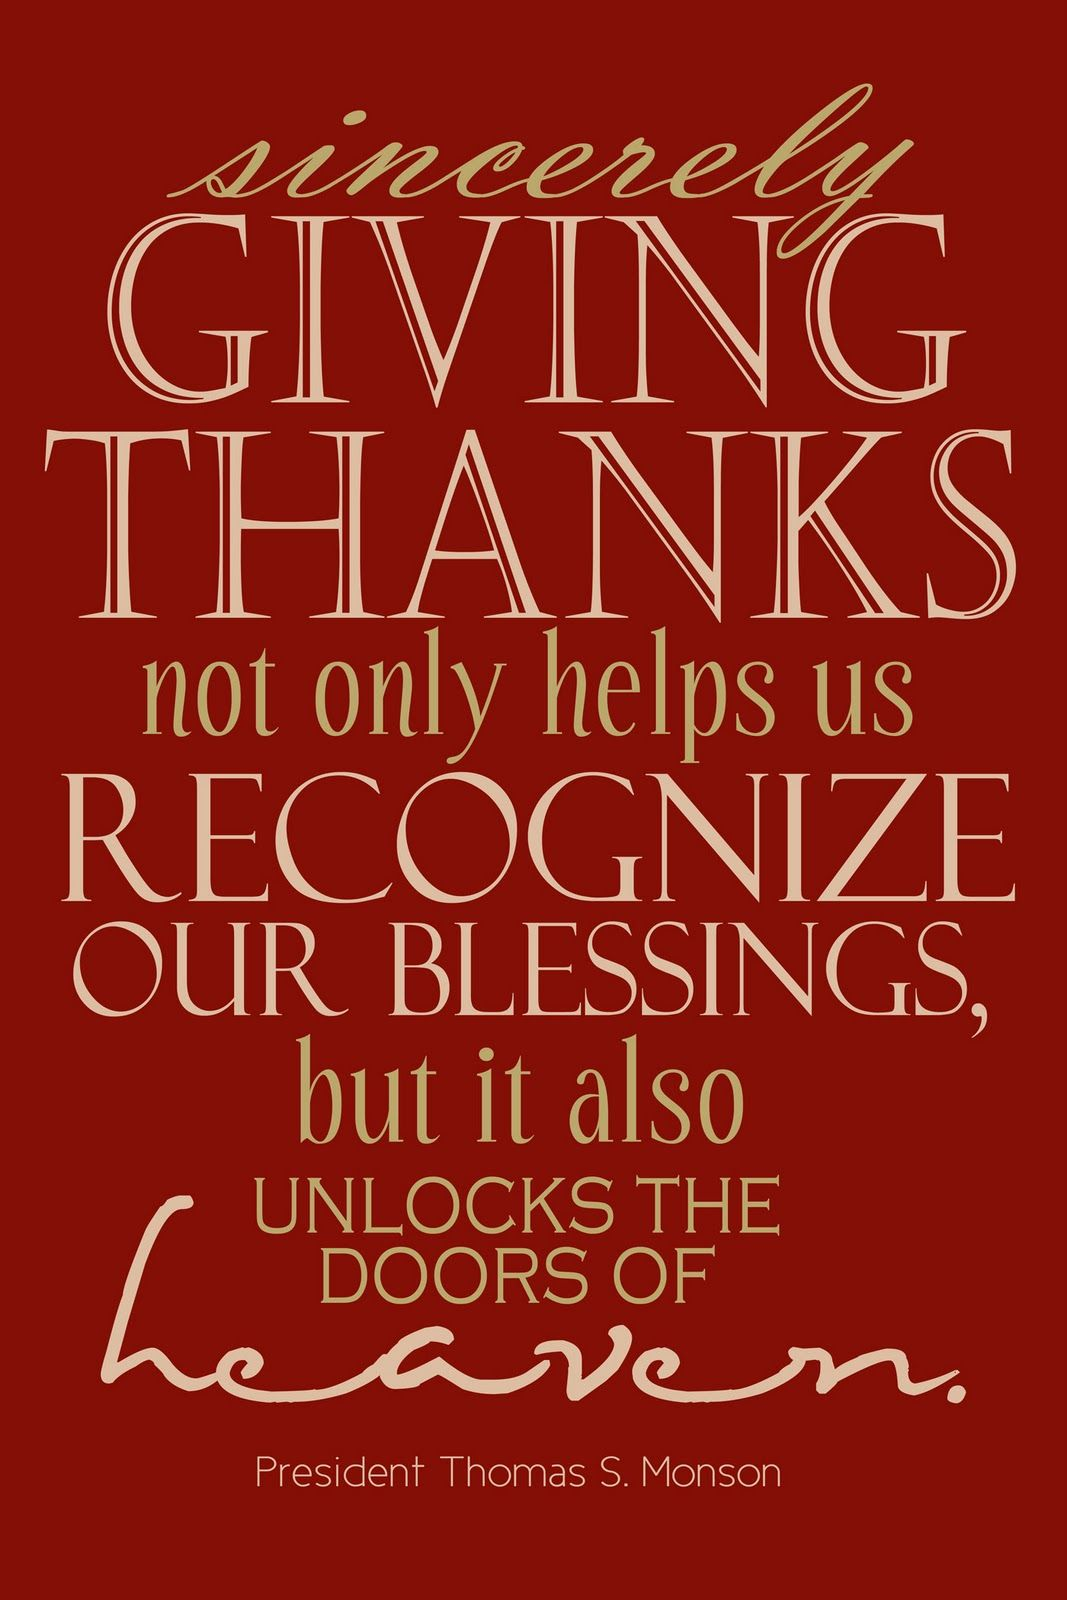 Sincerely Giving Thanks